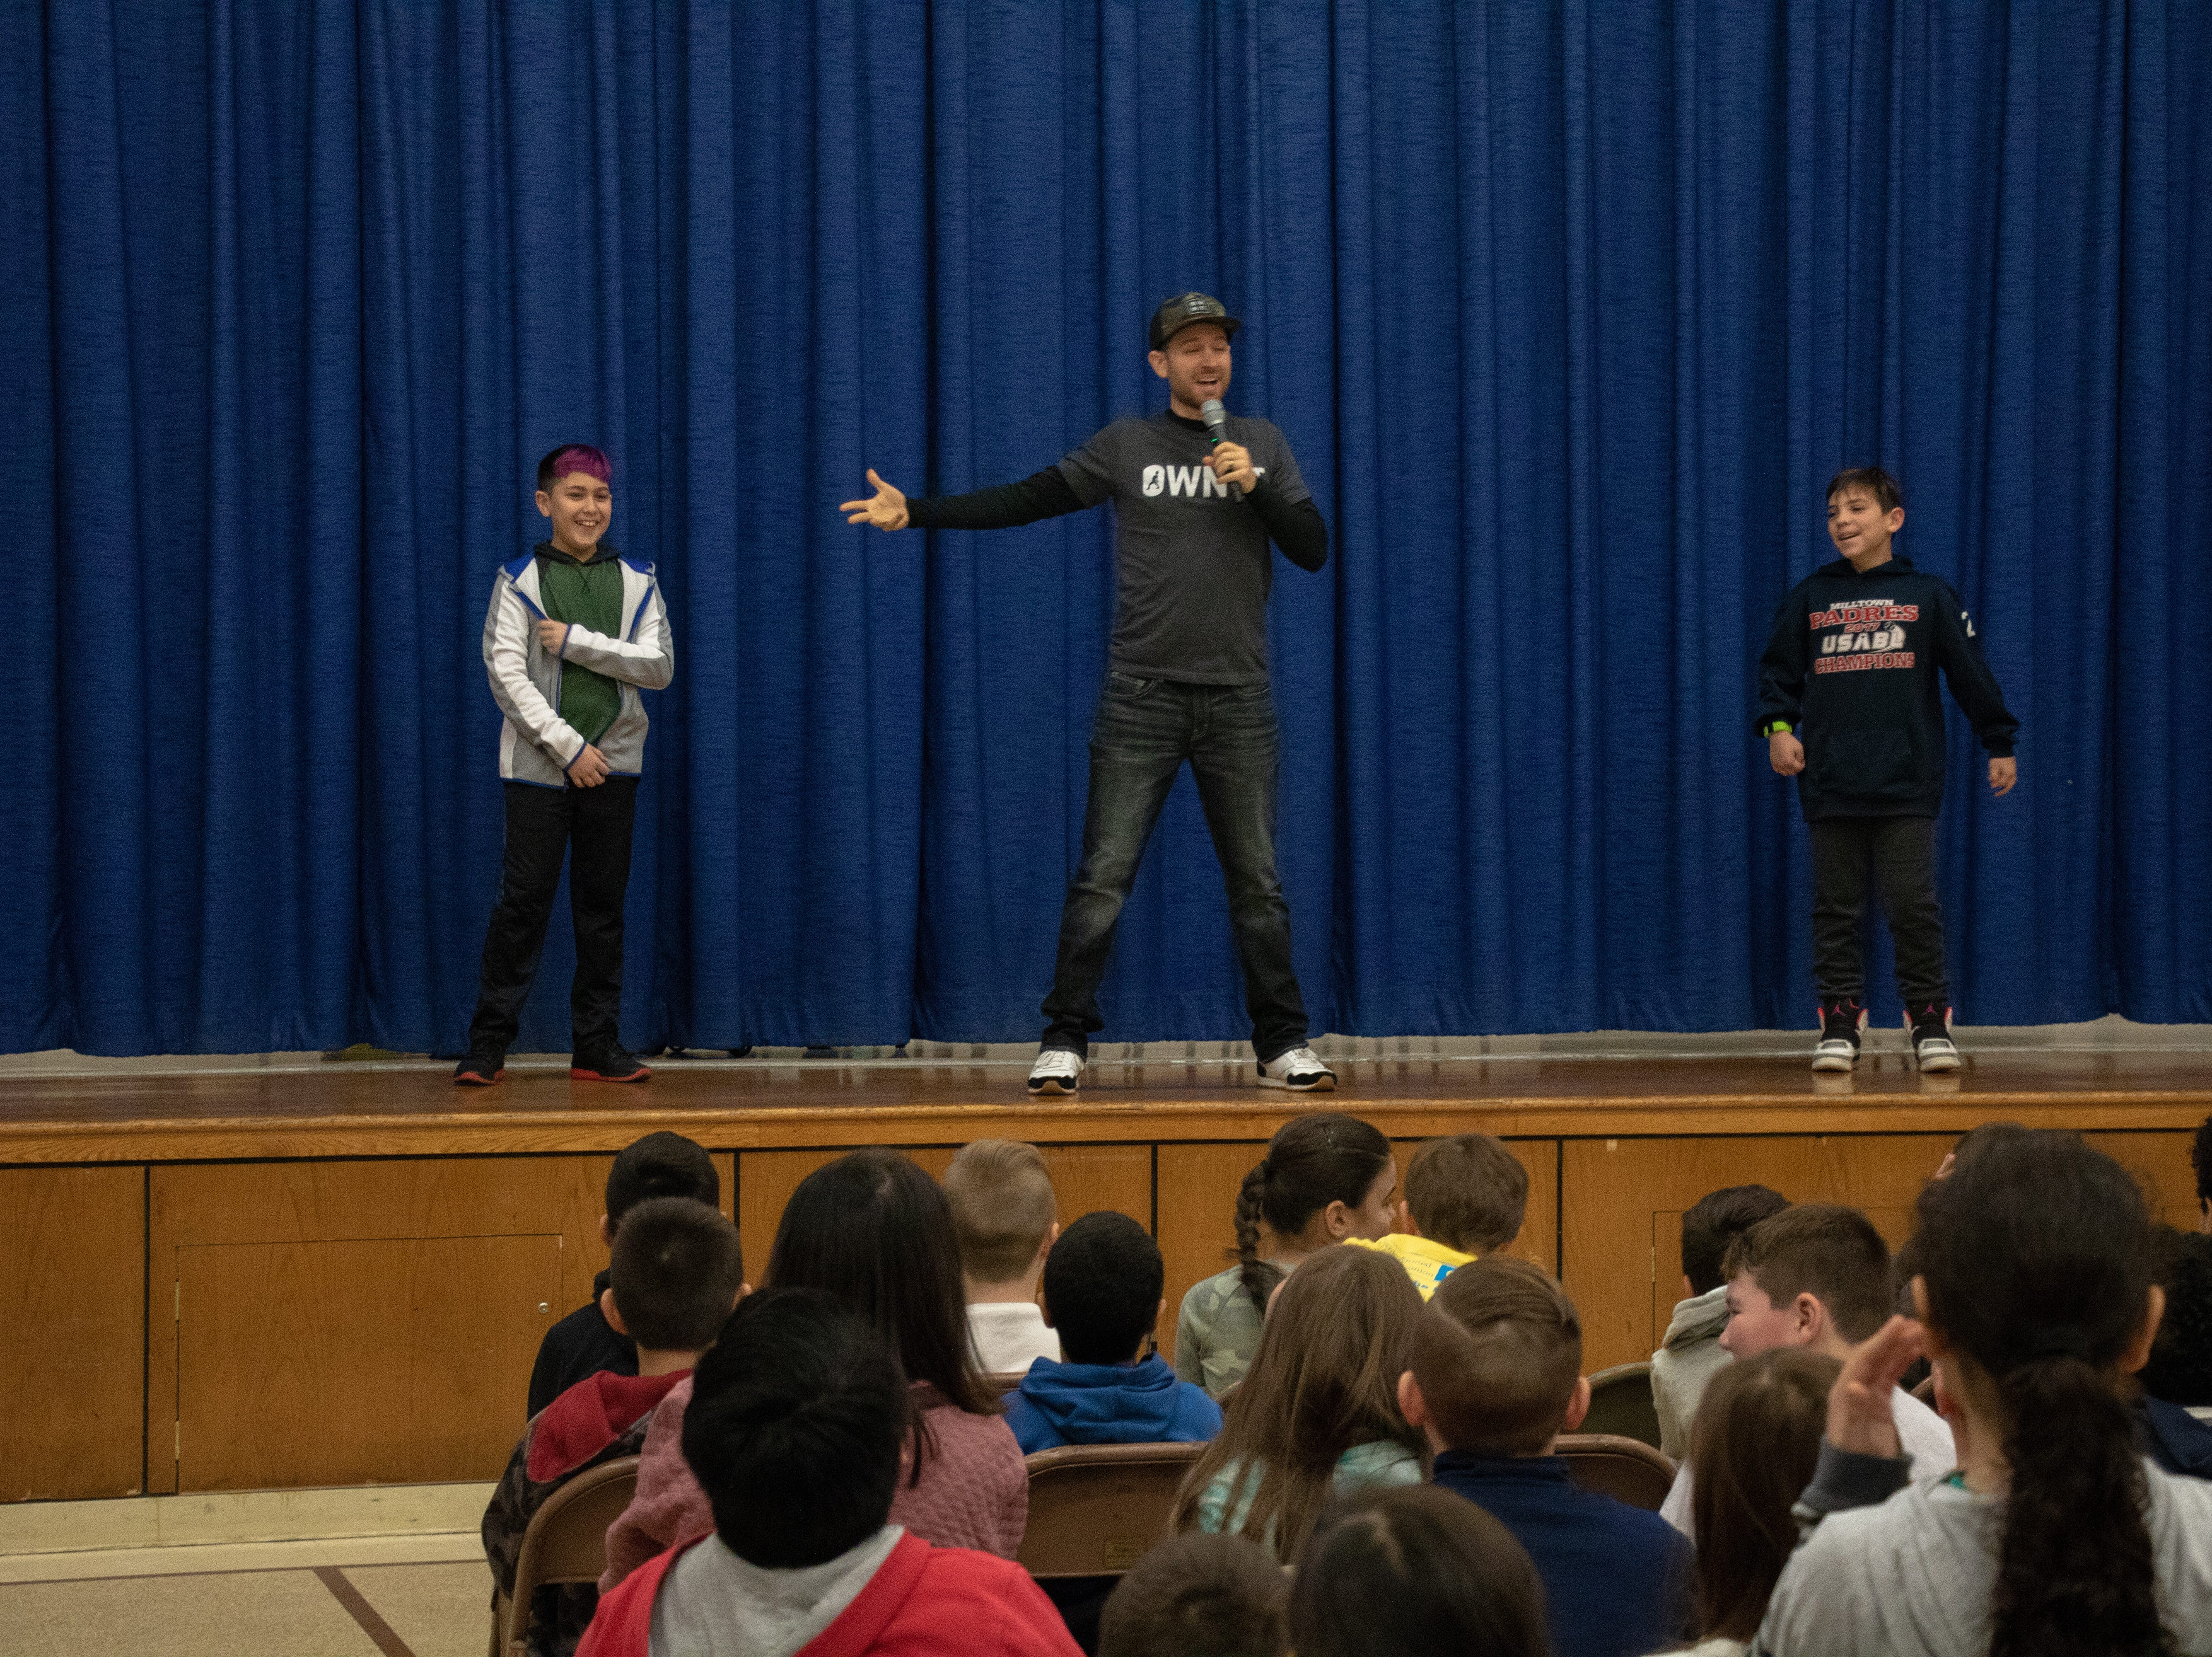 As part of the Rutgers University New Jersey School Transformation Climate Project, the Joyce Kilmer School had a whole day of activities on Friday, Jan. 4, starting with a presentation by motivational speaker Brandon Lee White at 9 a.m.